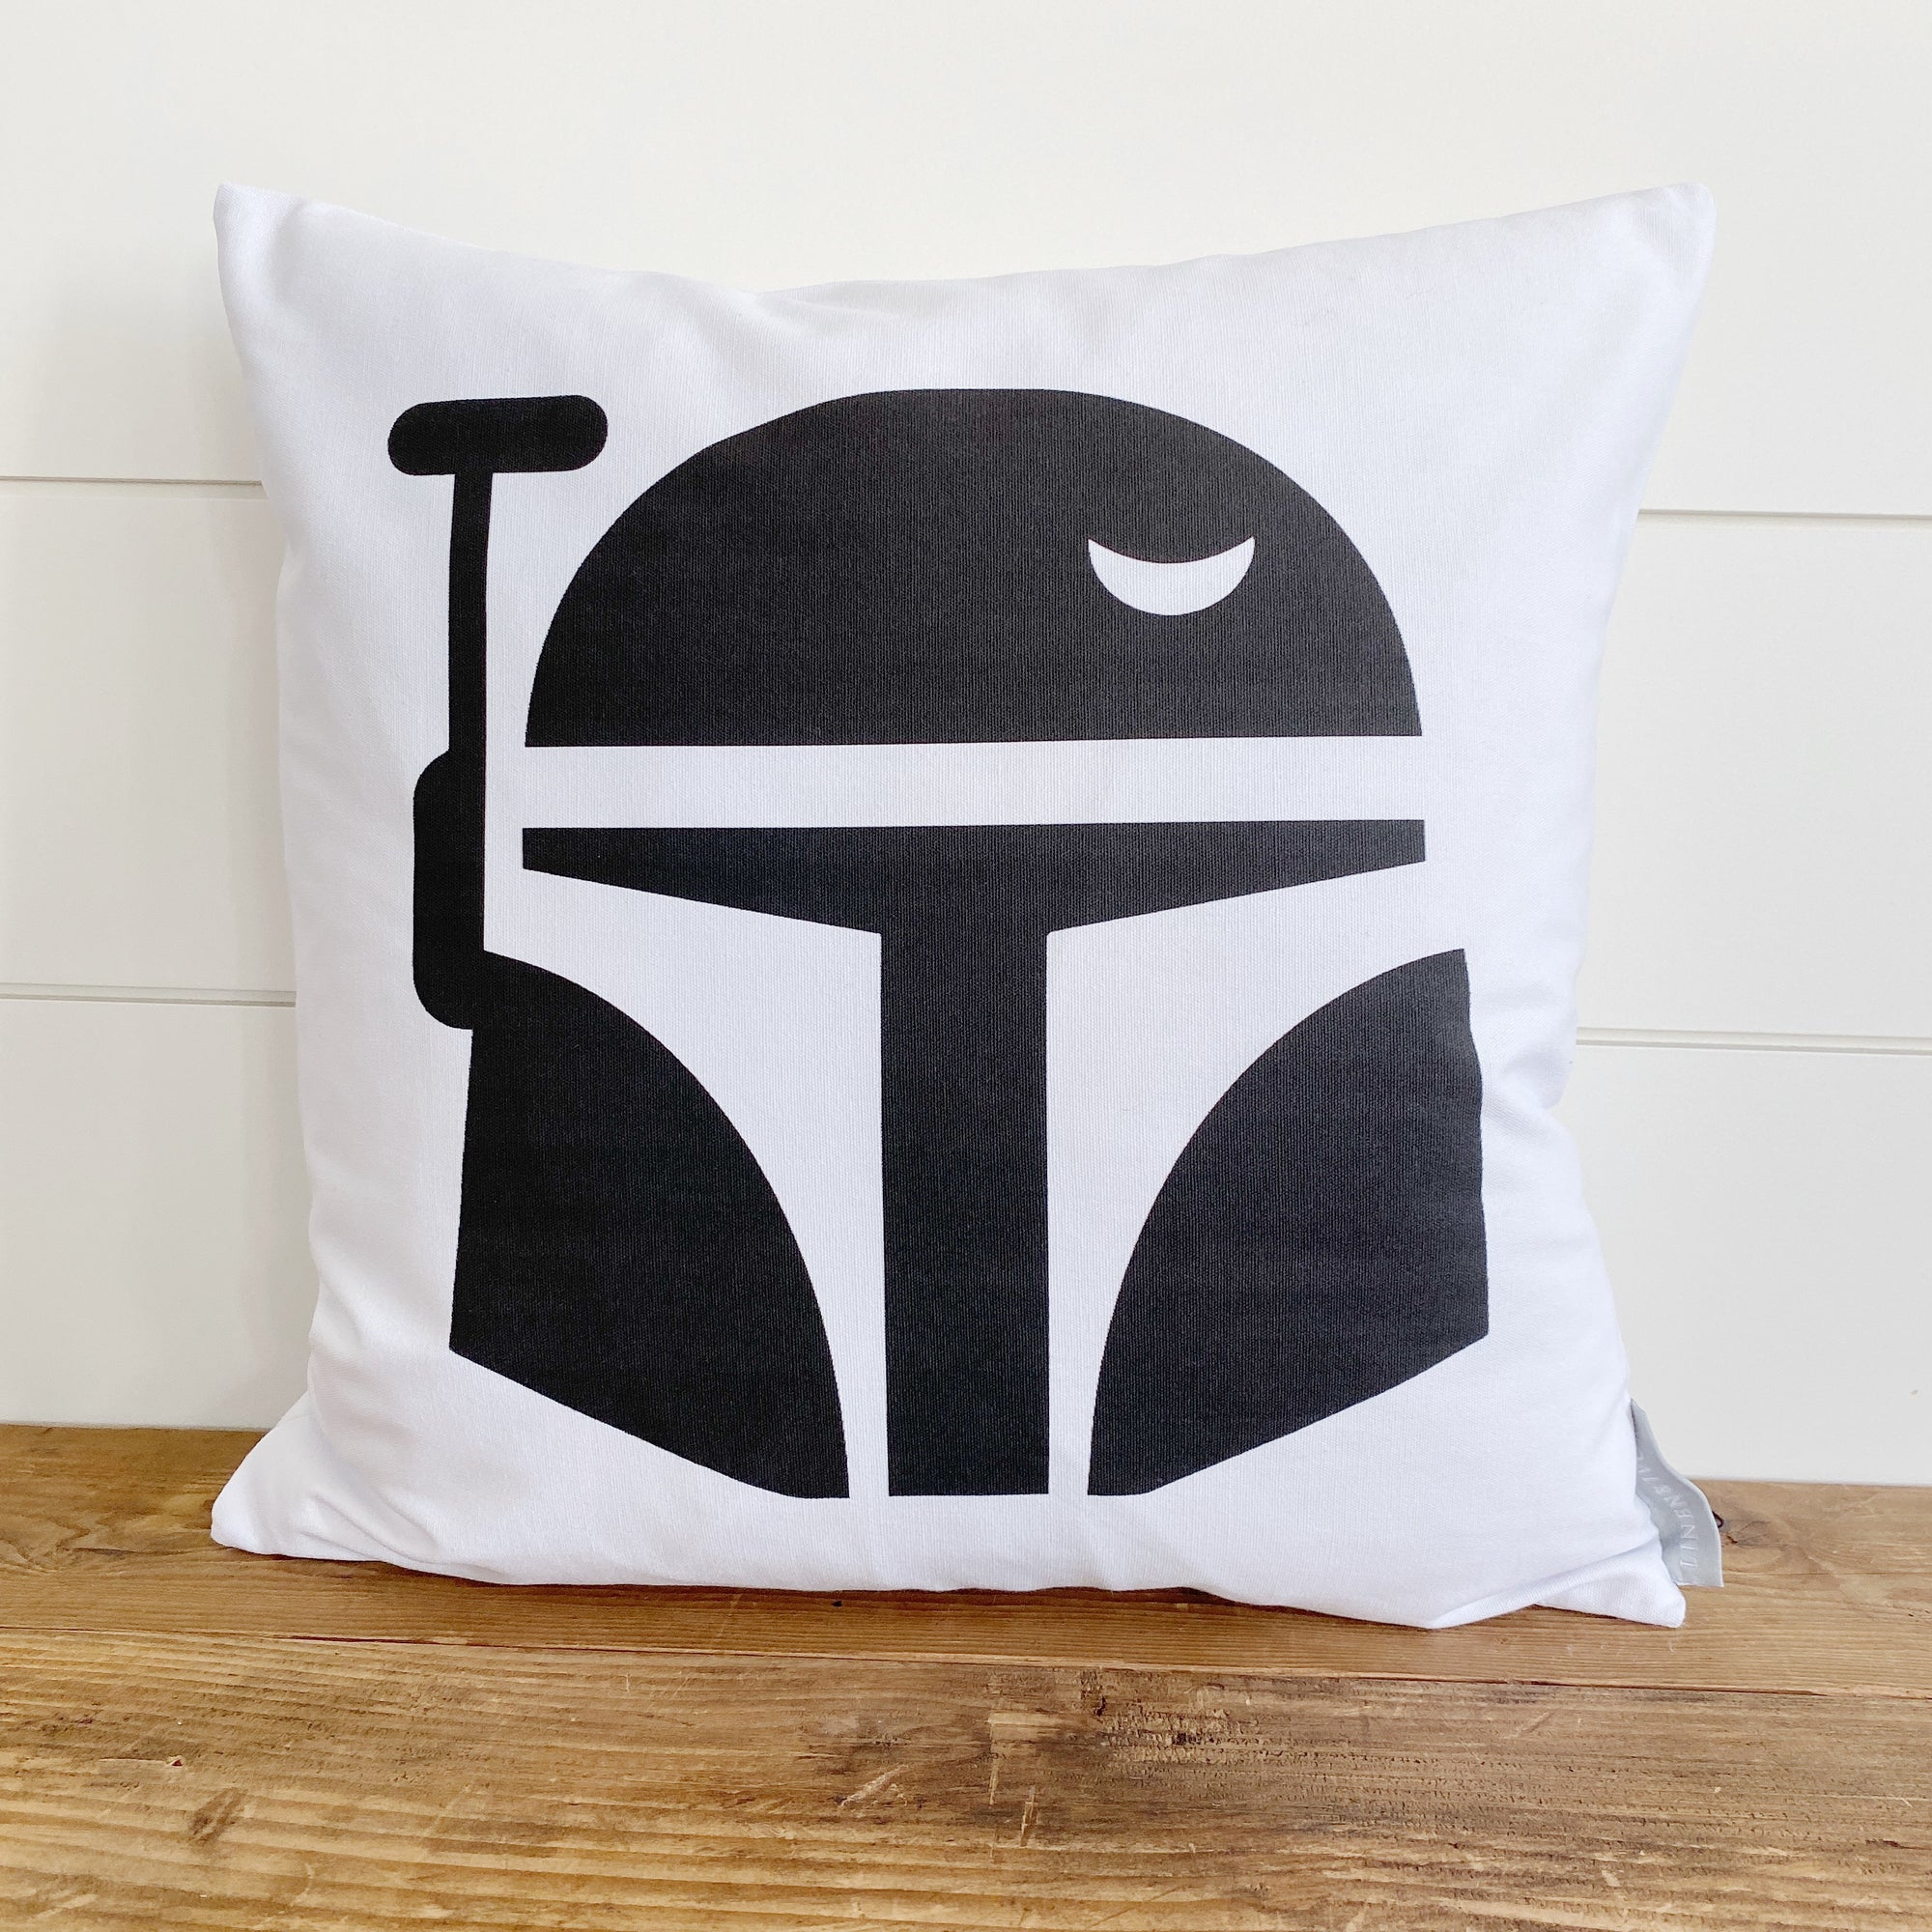 Mandalorian Pillow Cover - Linen and Ivory